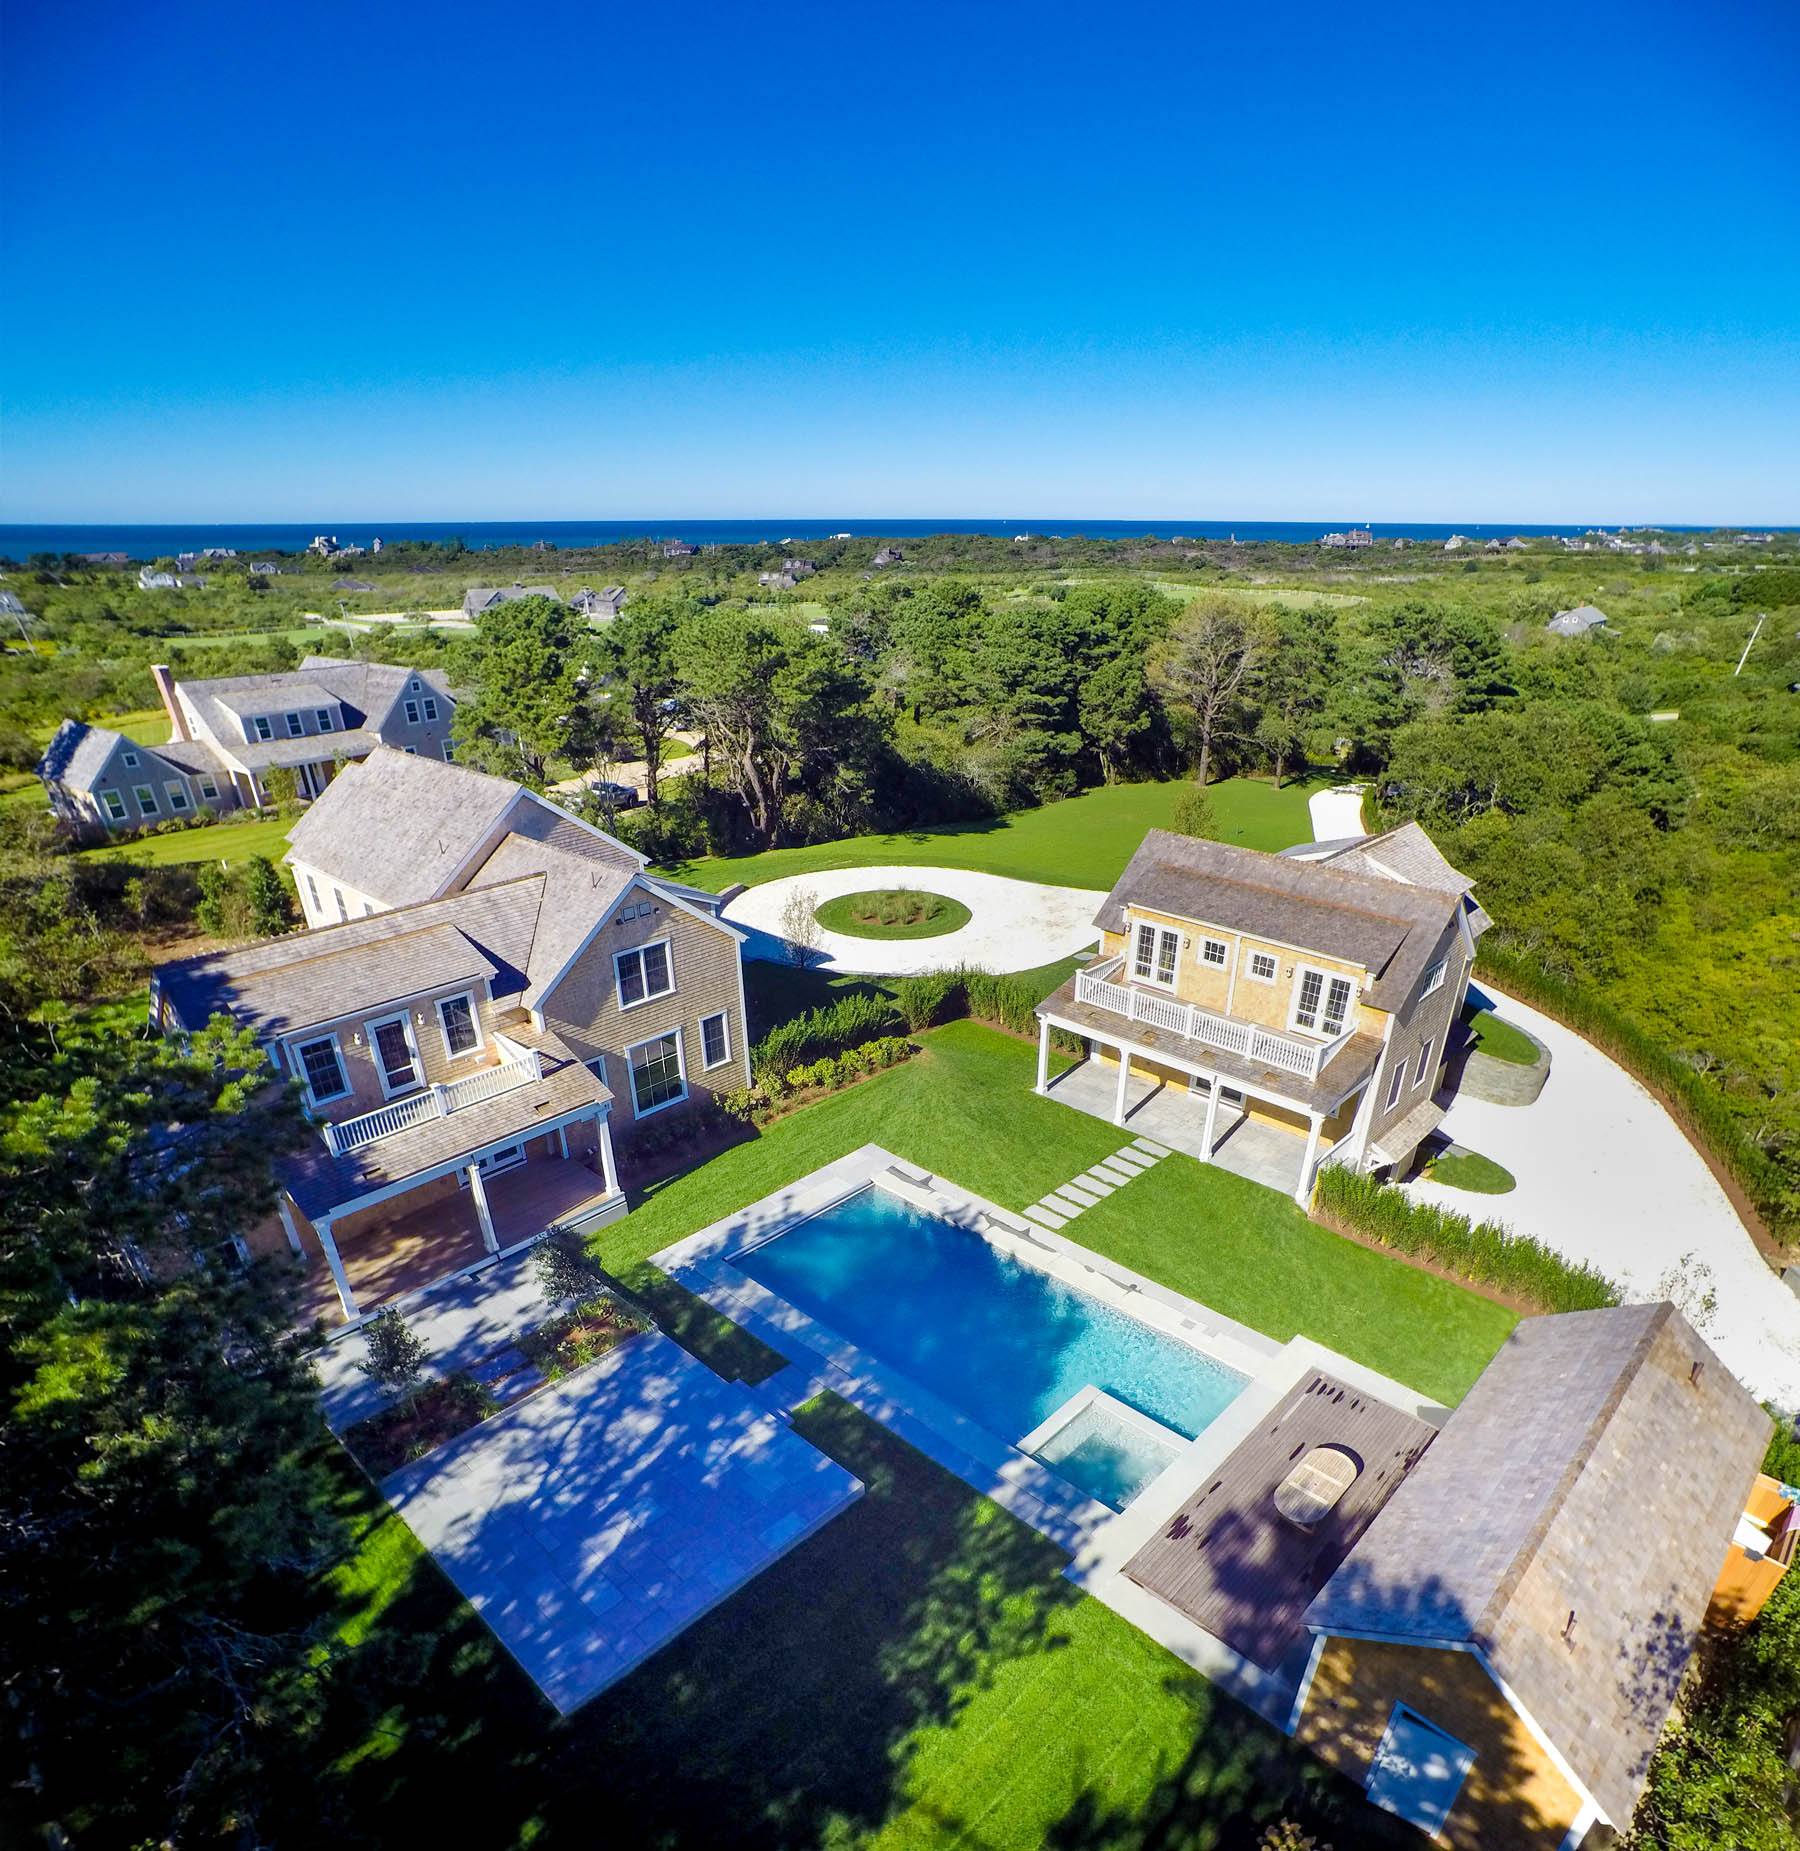 Casa Unifamiliar por un Venta en New. Stylish. Modern. State of the Art. 7 Primrose Lane Nantucket, Massachusetts, 02554 Estados Unidos